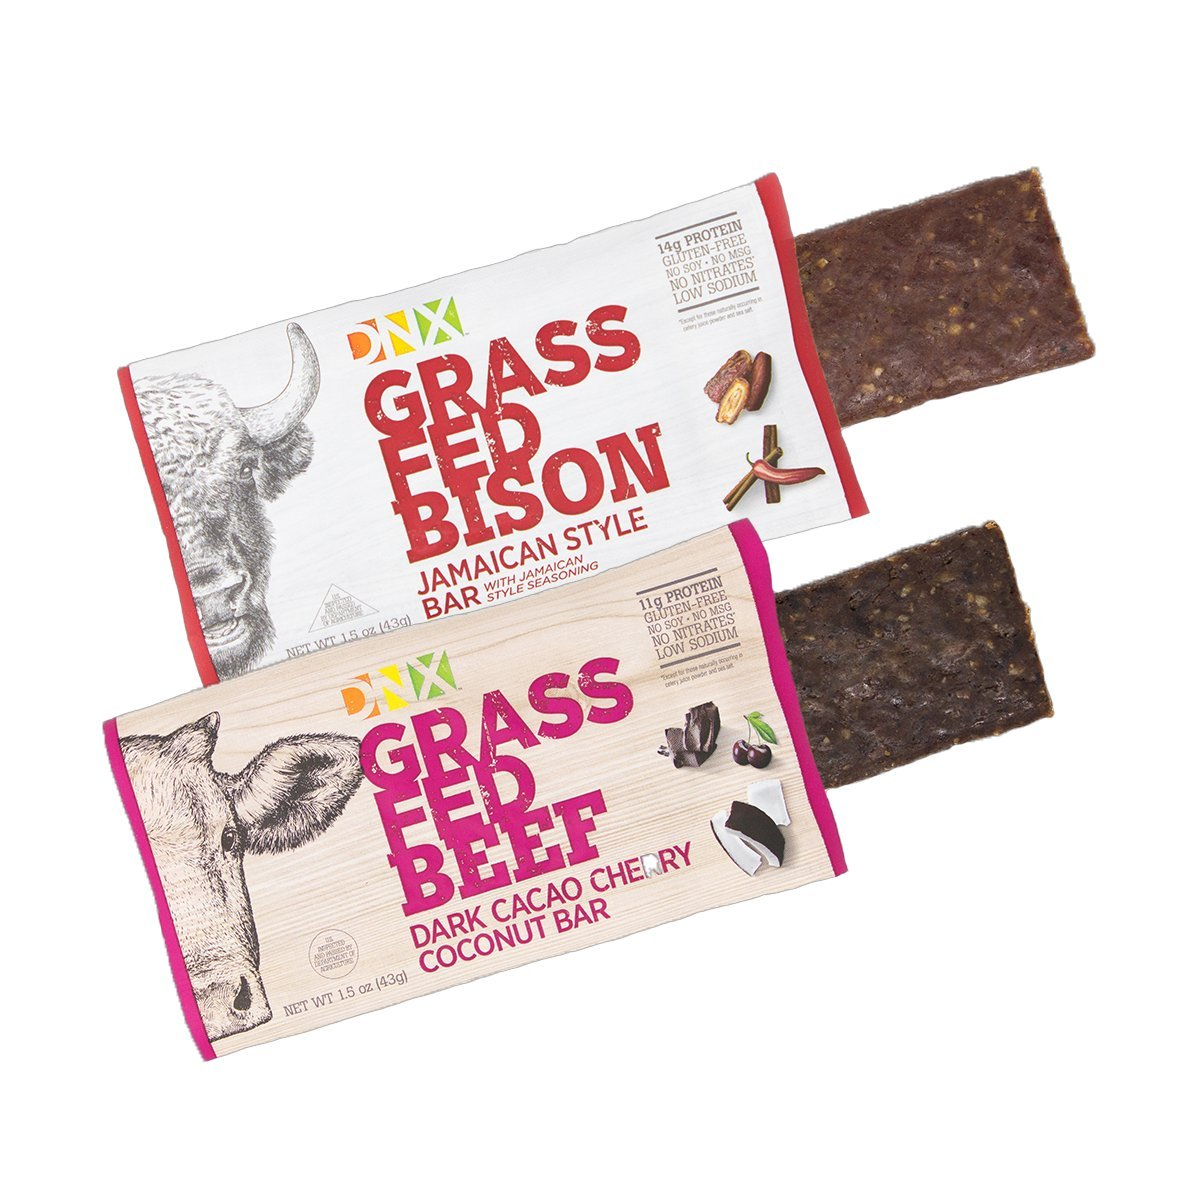 DNX Bar Grass Fed Bison and Beef Paleo Protein Bars Whole30 Approved Epic Taste with Our Jamaican Style Bison Bar and Our Dark Cacao Cherry Coconut Beef Bar (8 Bars)